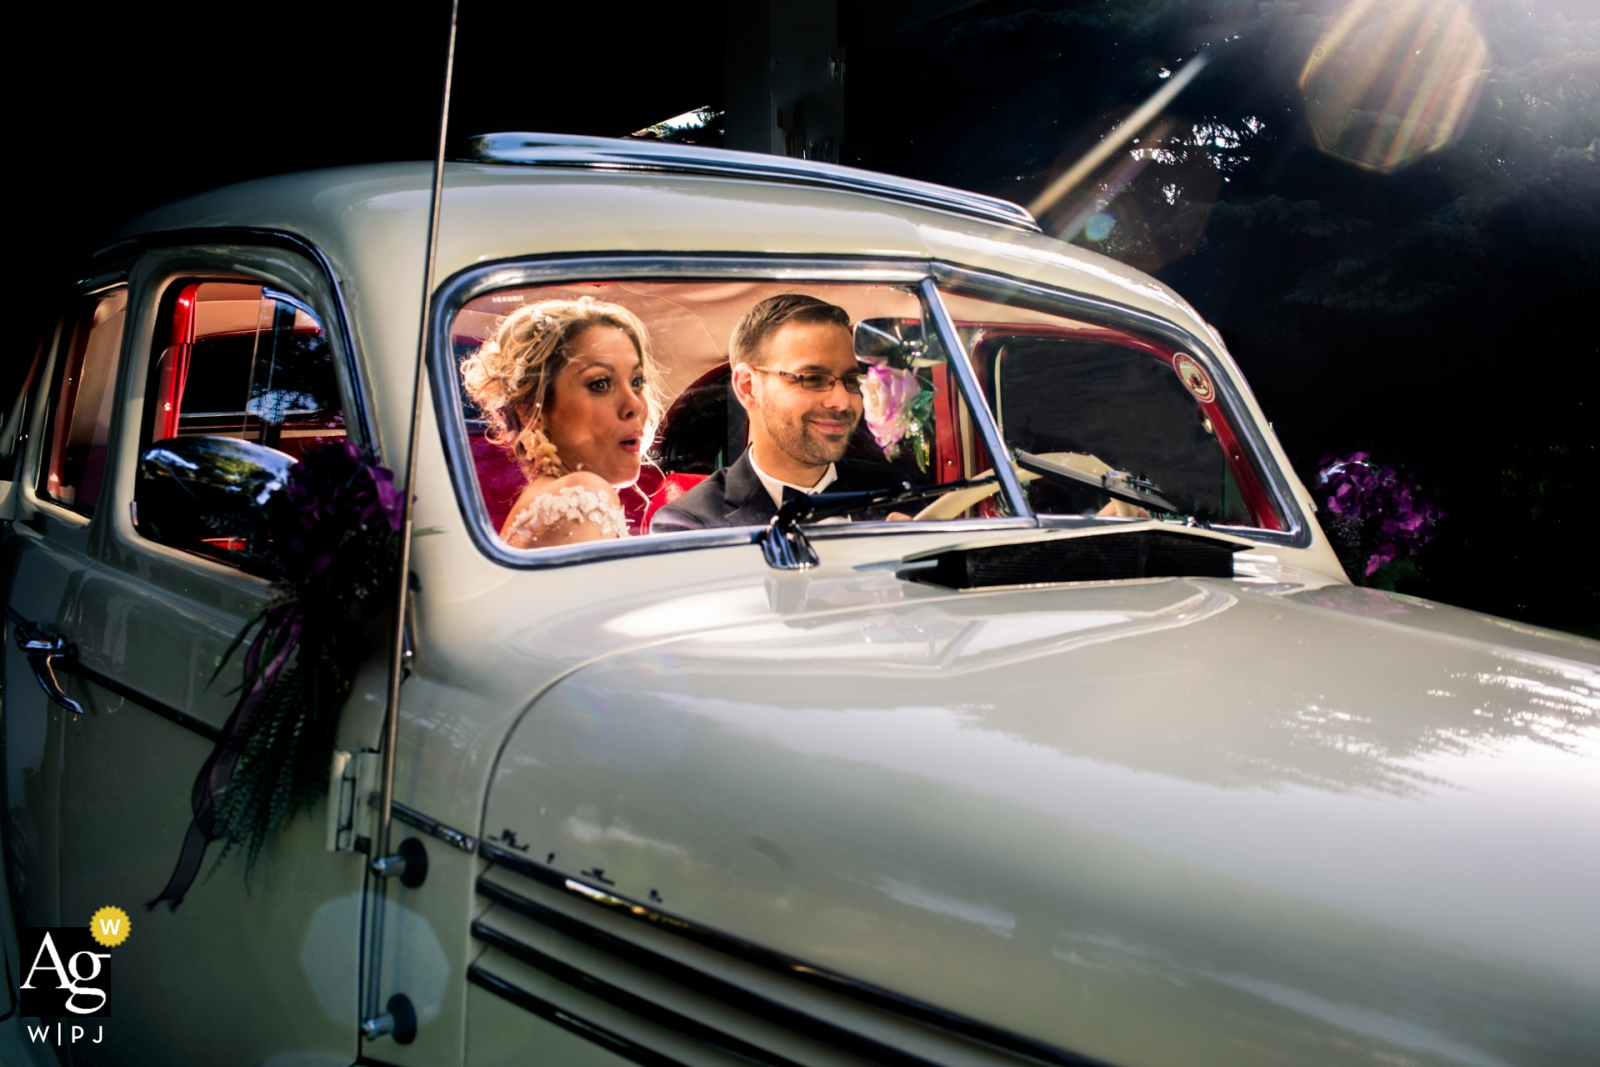 İncek Garden, Ankara wedding photographer: Bide and groom in a vintage car highlighted with an inside flash are pretending like they are driving